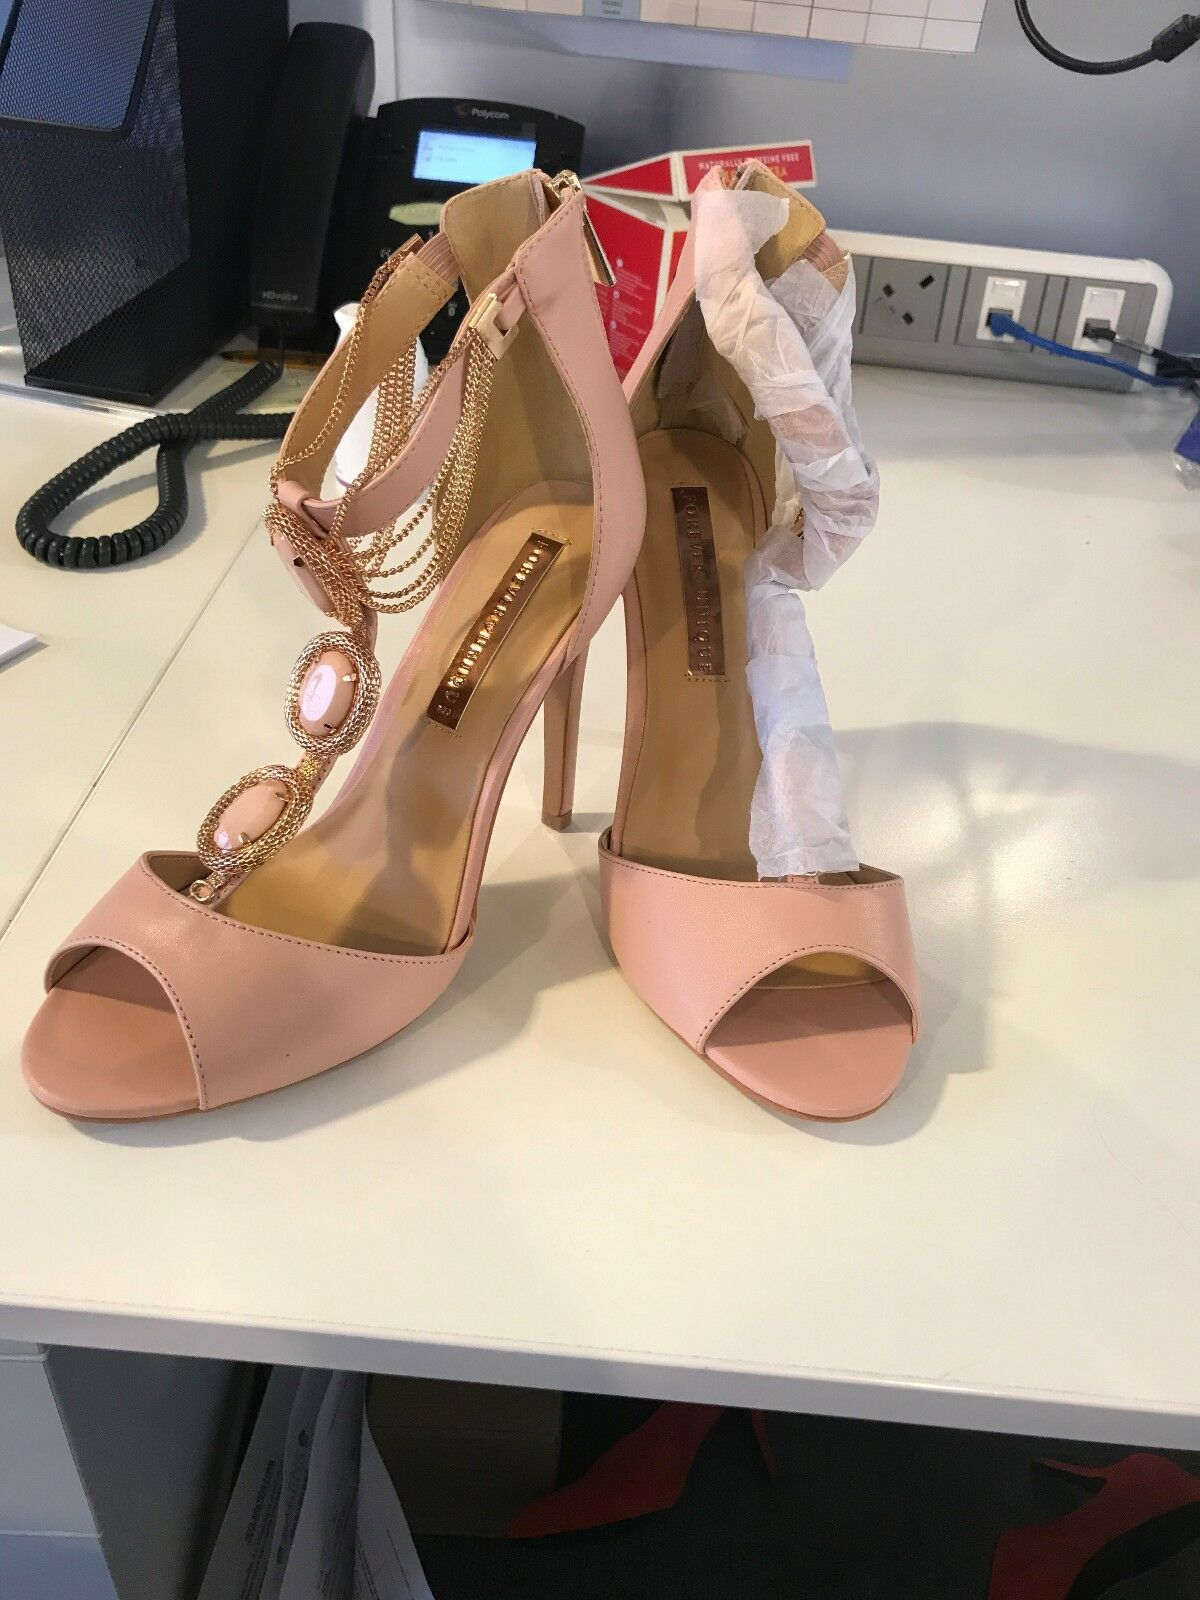 "Perfect party party party Never Been Worn ""Forever Unique"" Pink Nude Sandals, size 6 53064a"